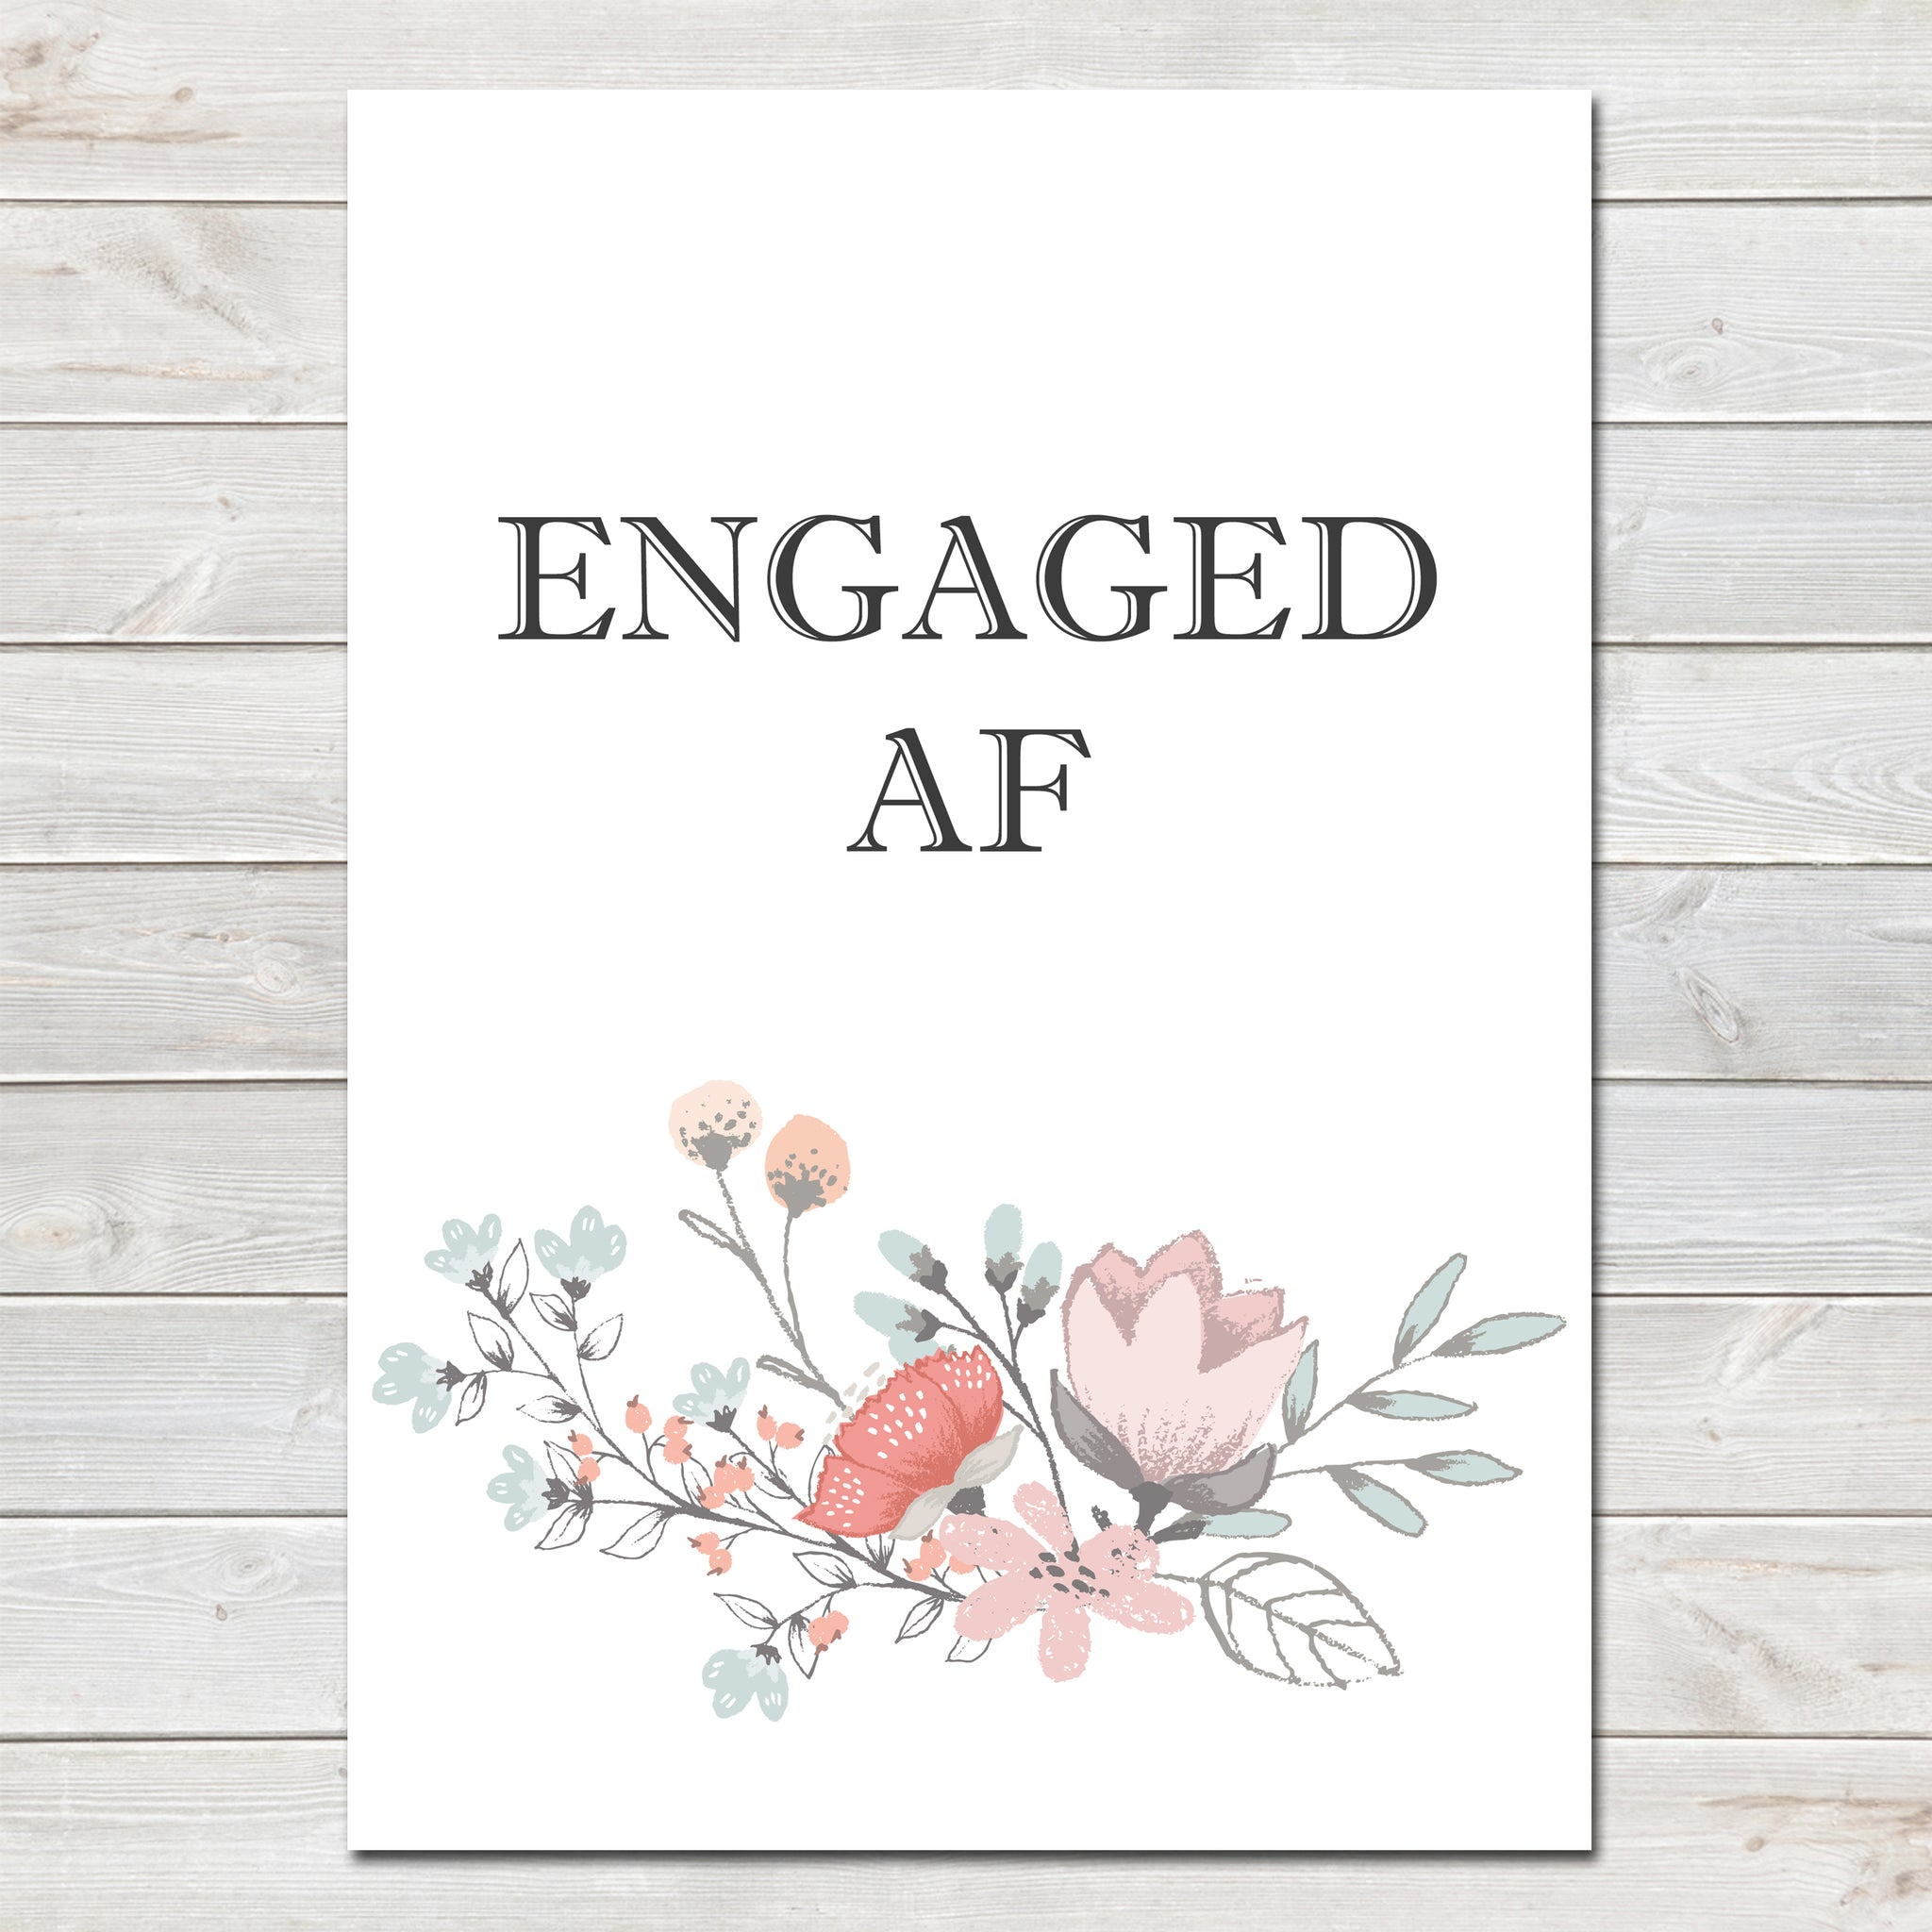 Engagement Party Engaged AF (As F***) Floral Poster / Photo Prop / Sign